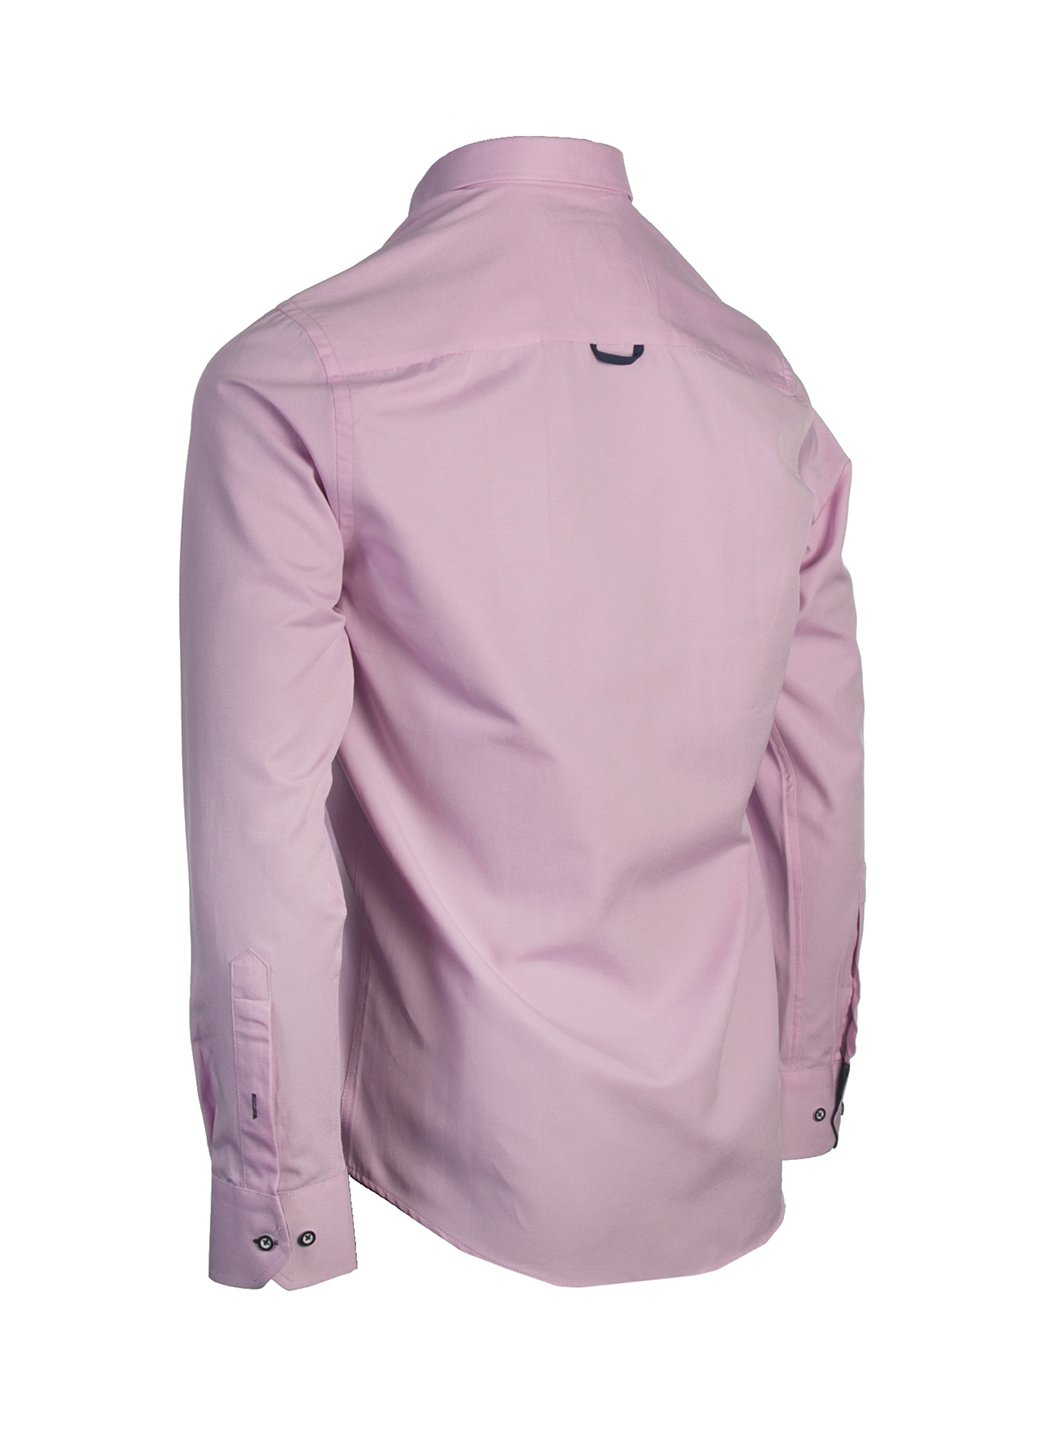 LOLLAND PINK OXFORD LONG SLEEVE  SHIRT